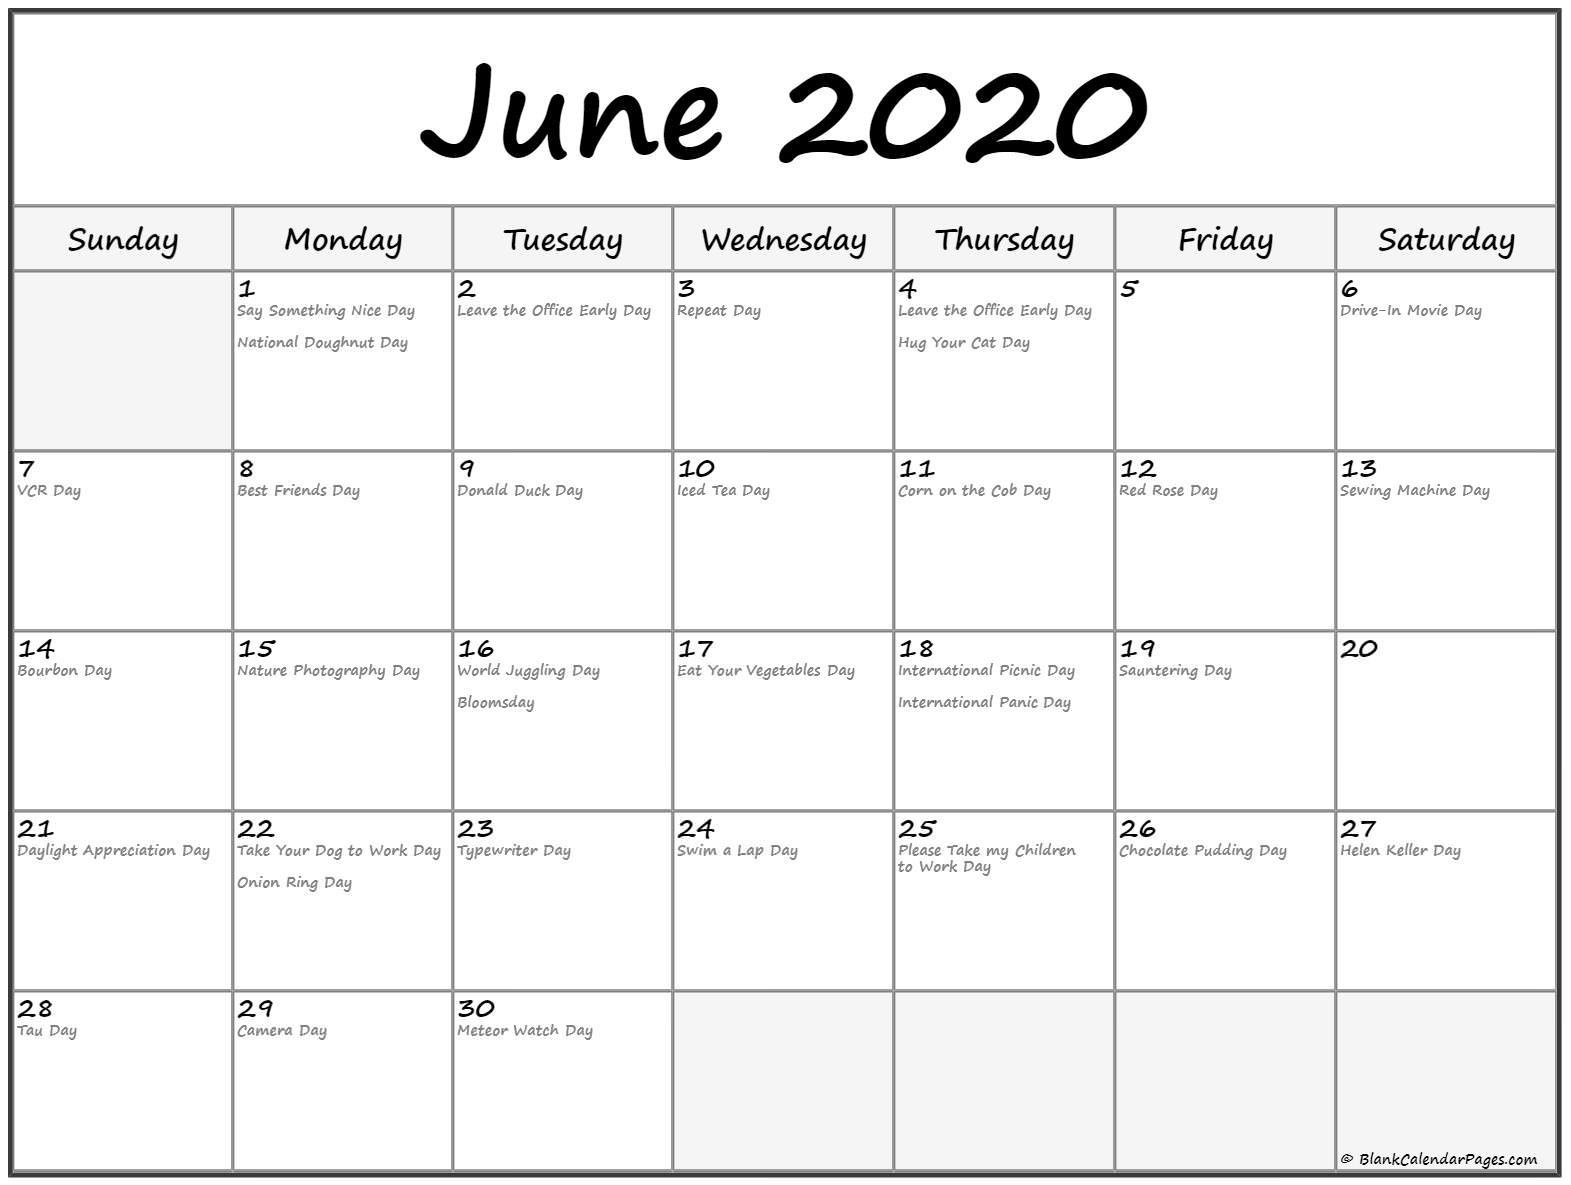 Printable Calendar May and June 2020 Collection Of June 2020 Calendars with Holidays